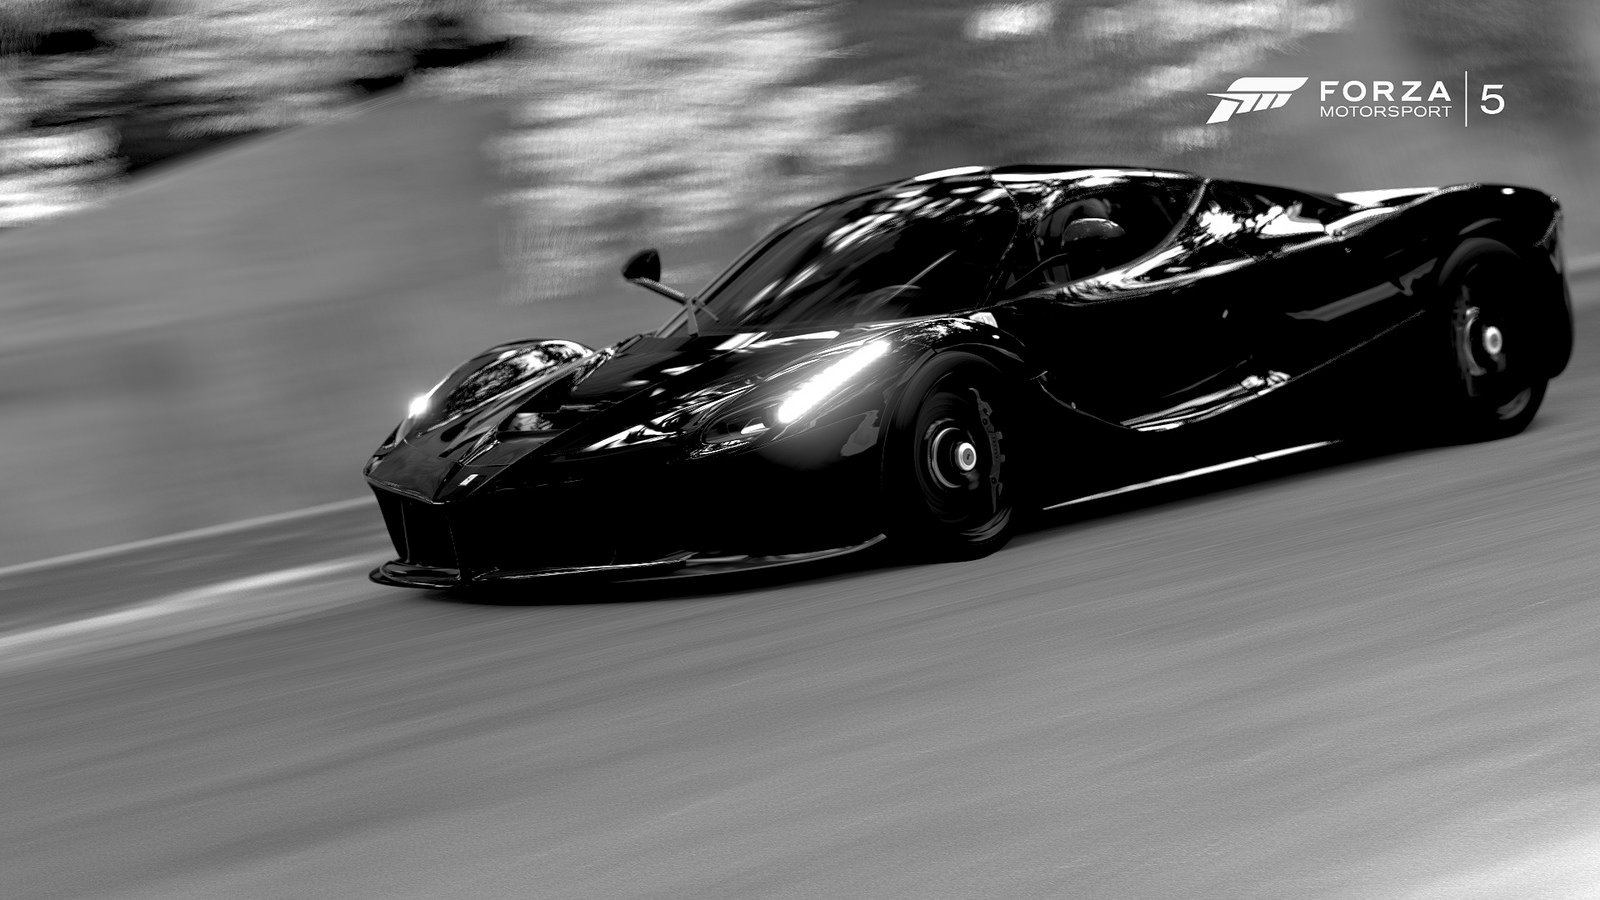 Fast And Furious 5 Cars Wallpapers Ferrari Laferrari Forza Motorsport 5 Cars Videogames